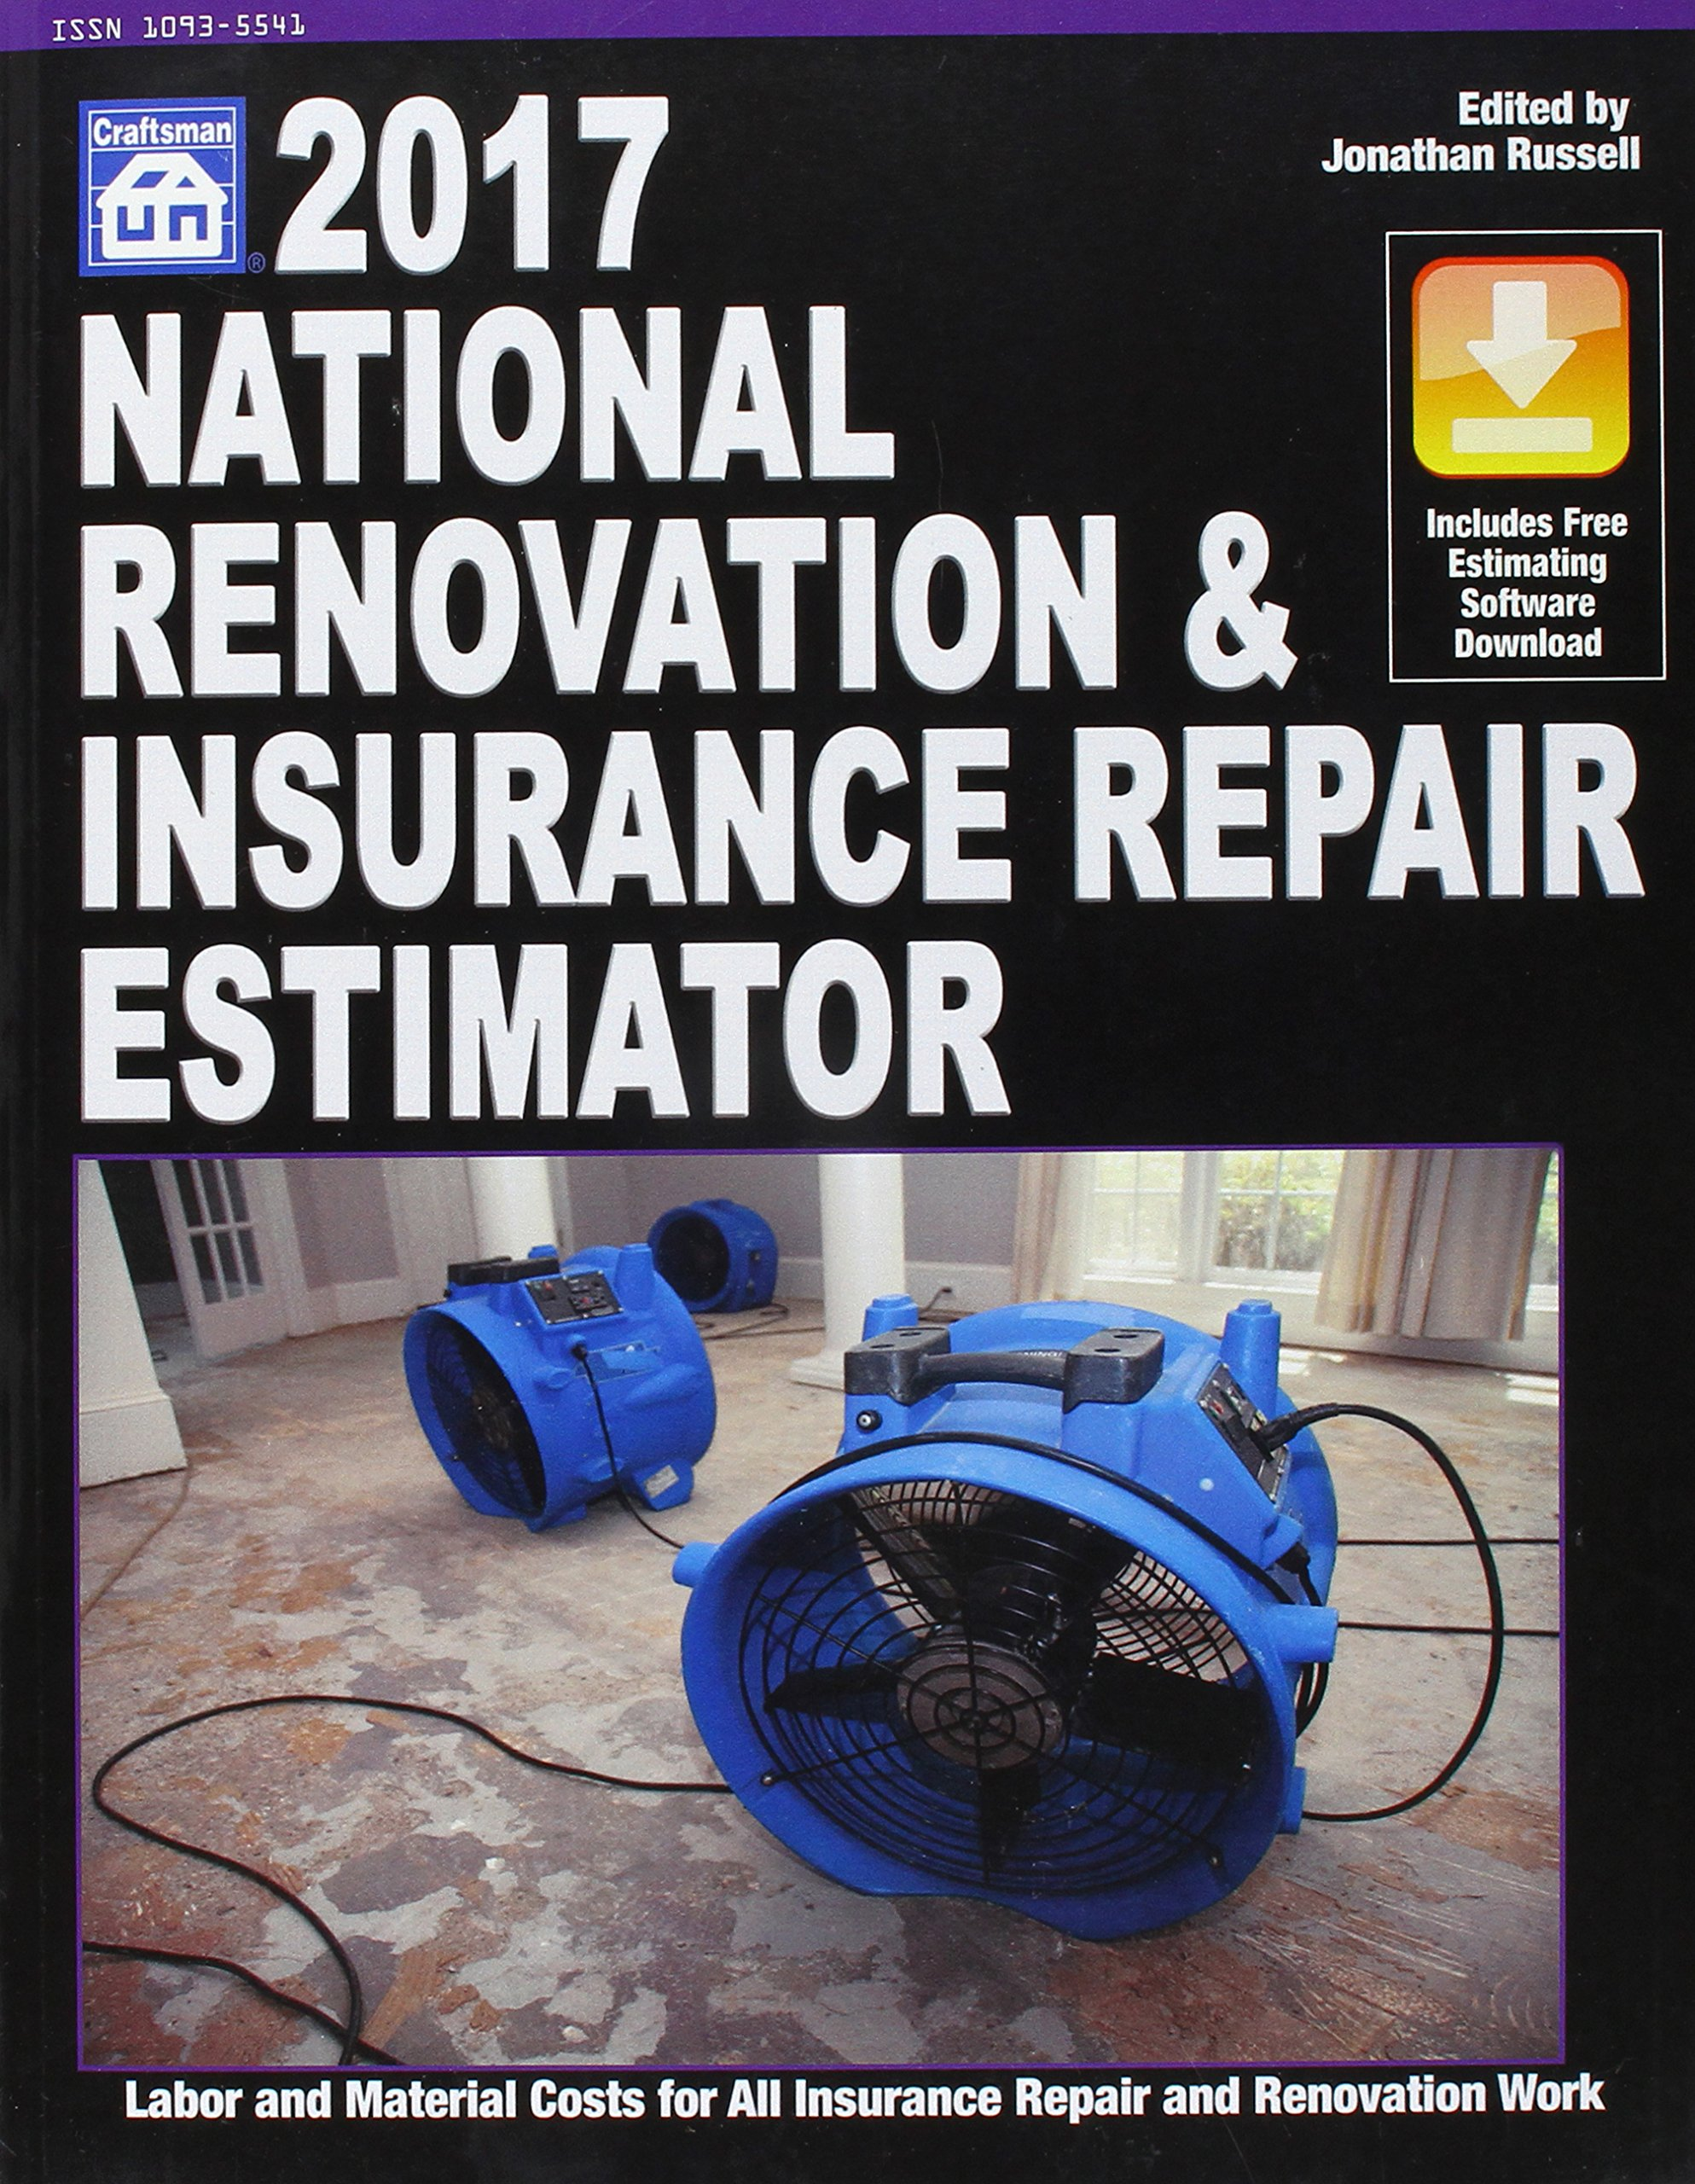 National Renovation & Insurance Repair Estimator 2017 (National Renovation and Insurance Repair Estimator)